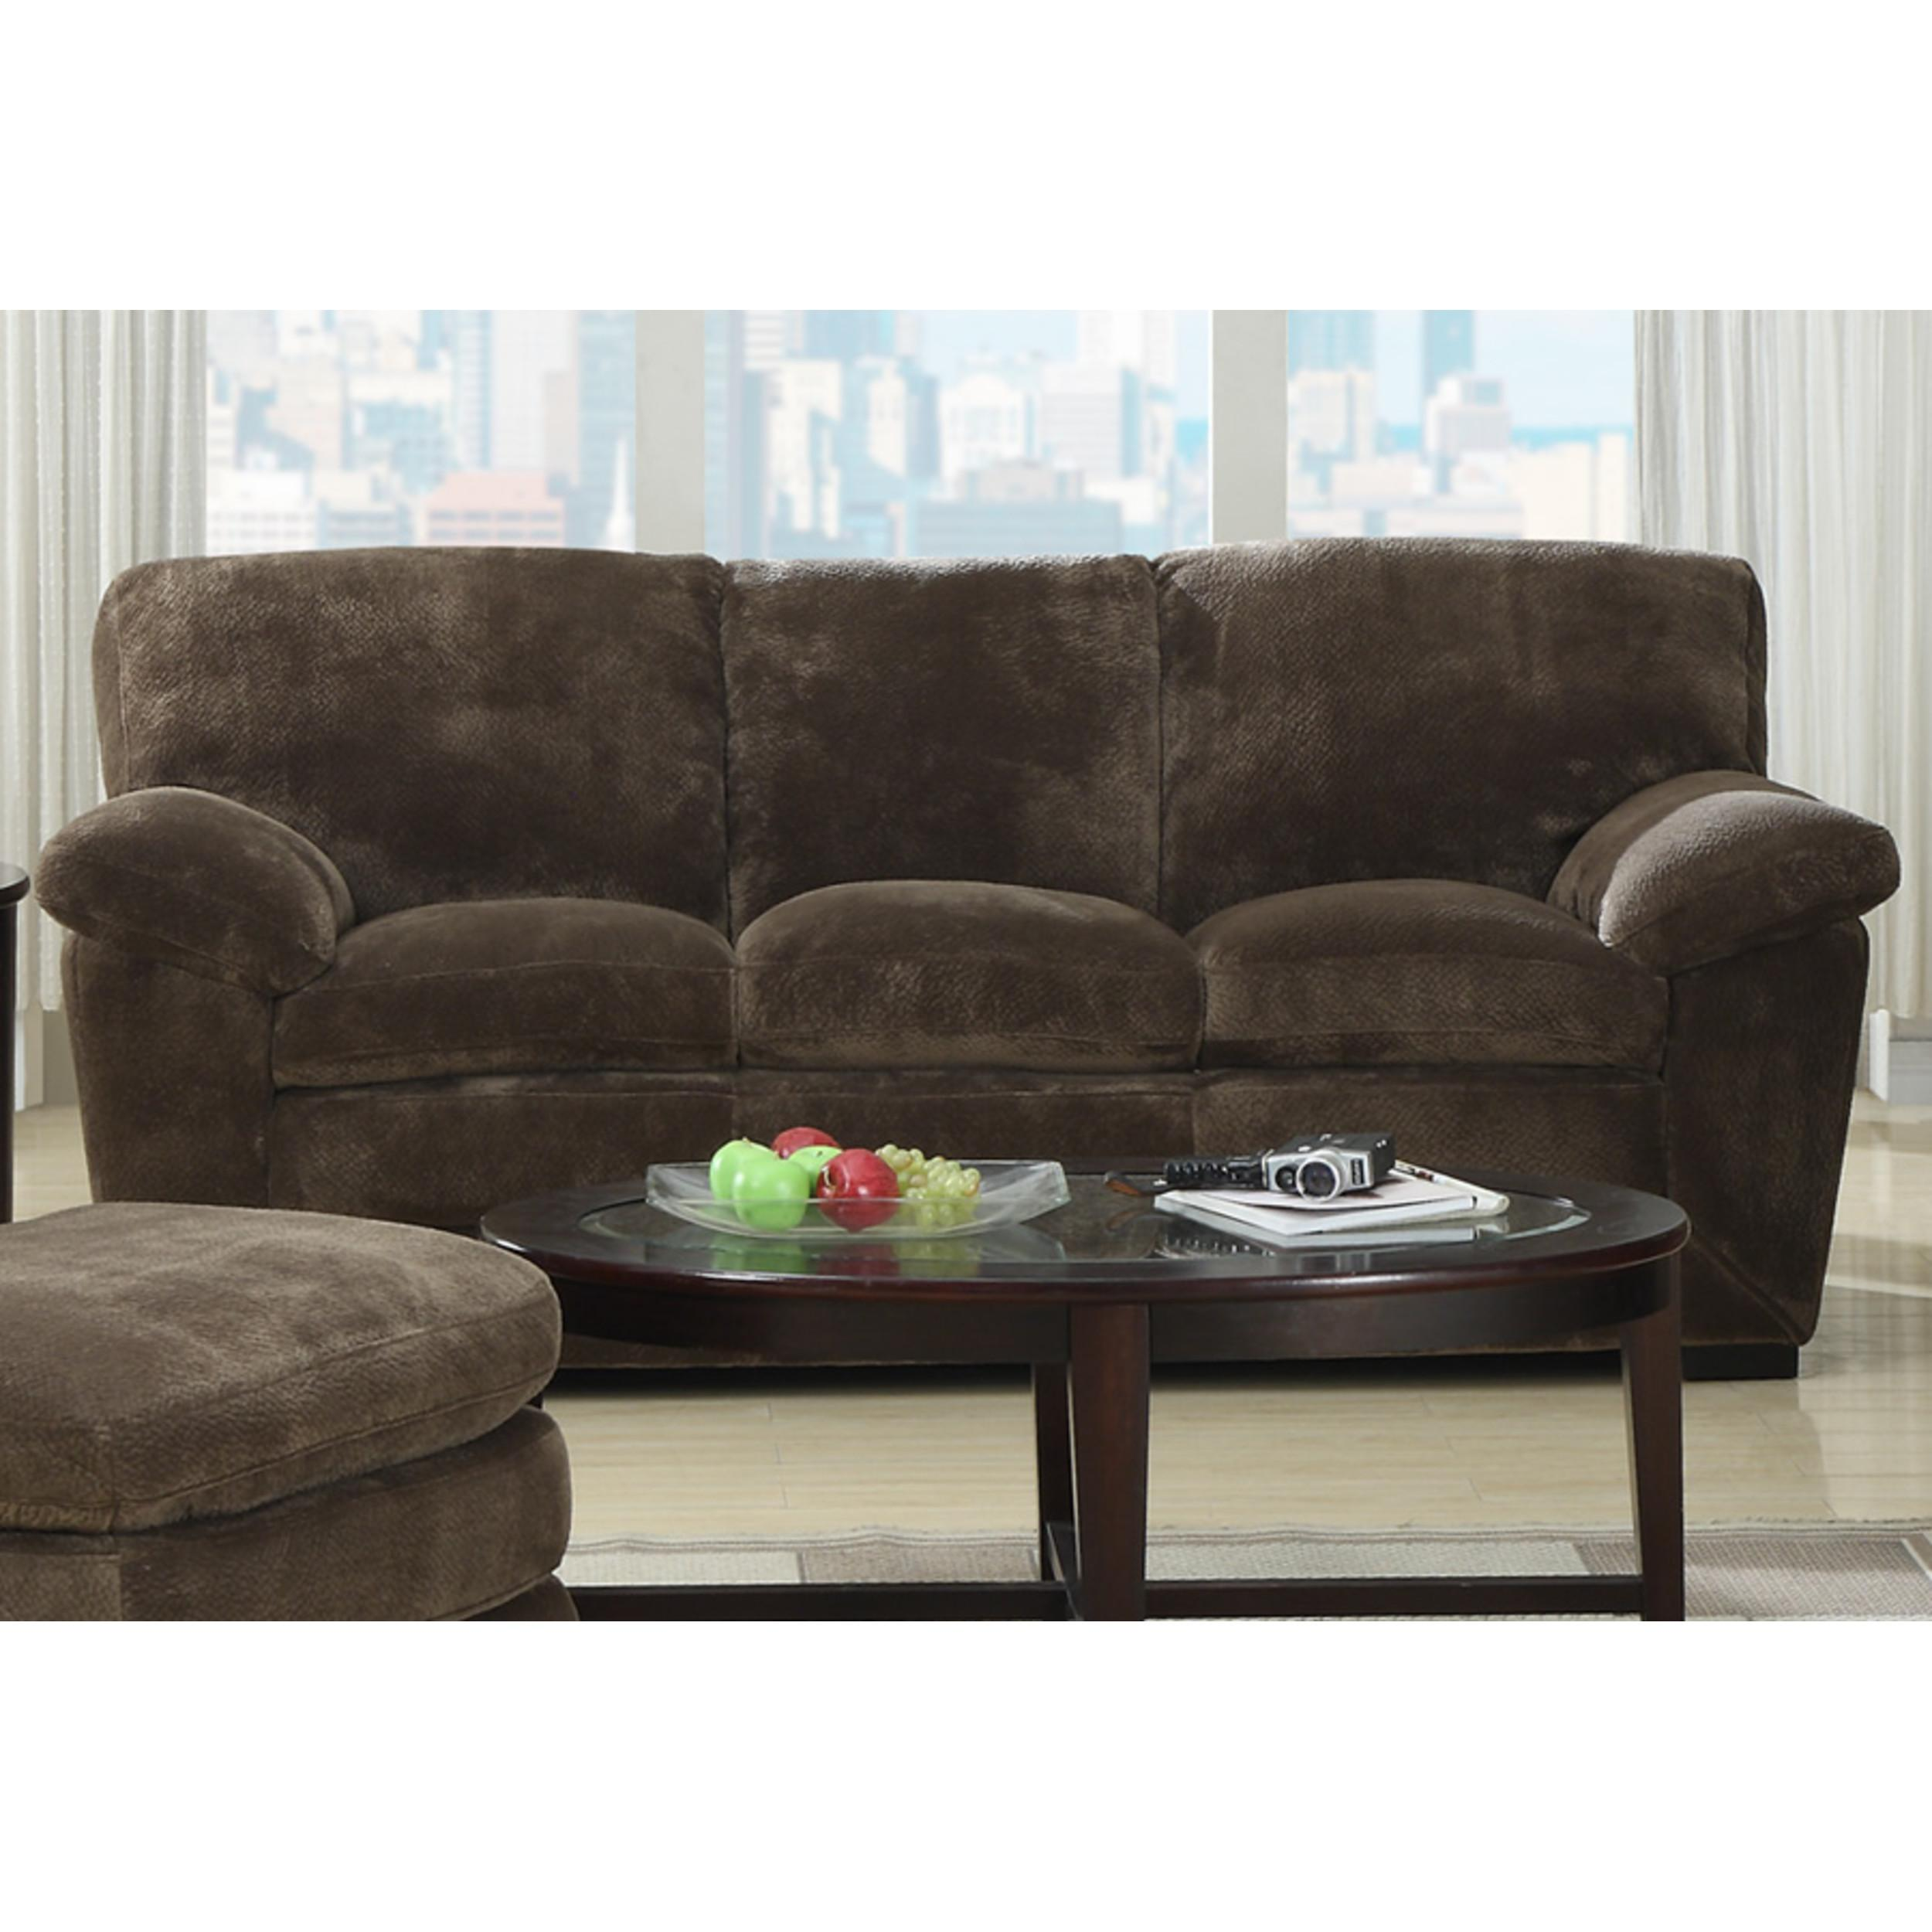 Emerald Home Devon Mocha Fabric Sofa